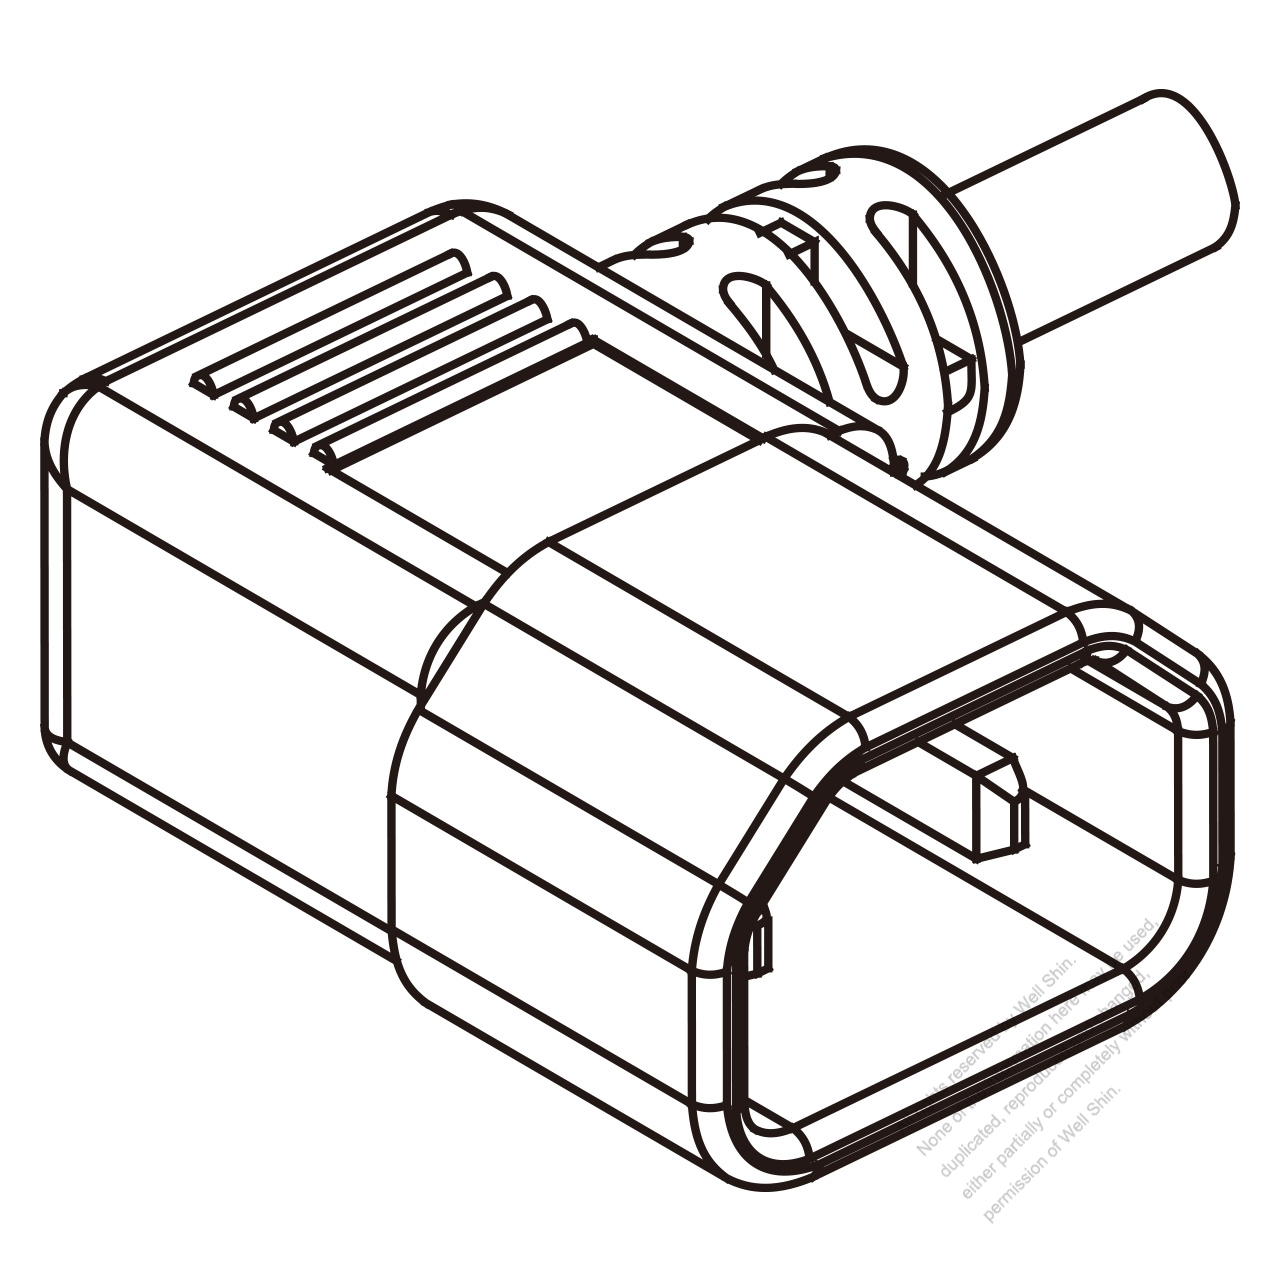 IEC 320 Sheet G Plug Connectors 3-Pin Angle 10A 250V